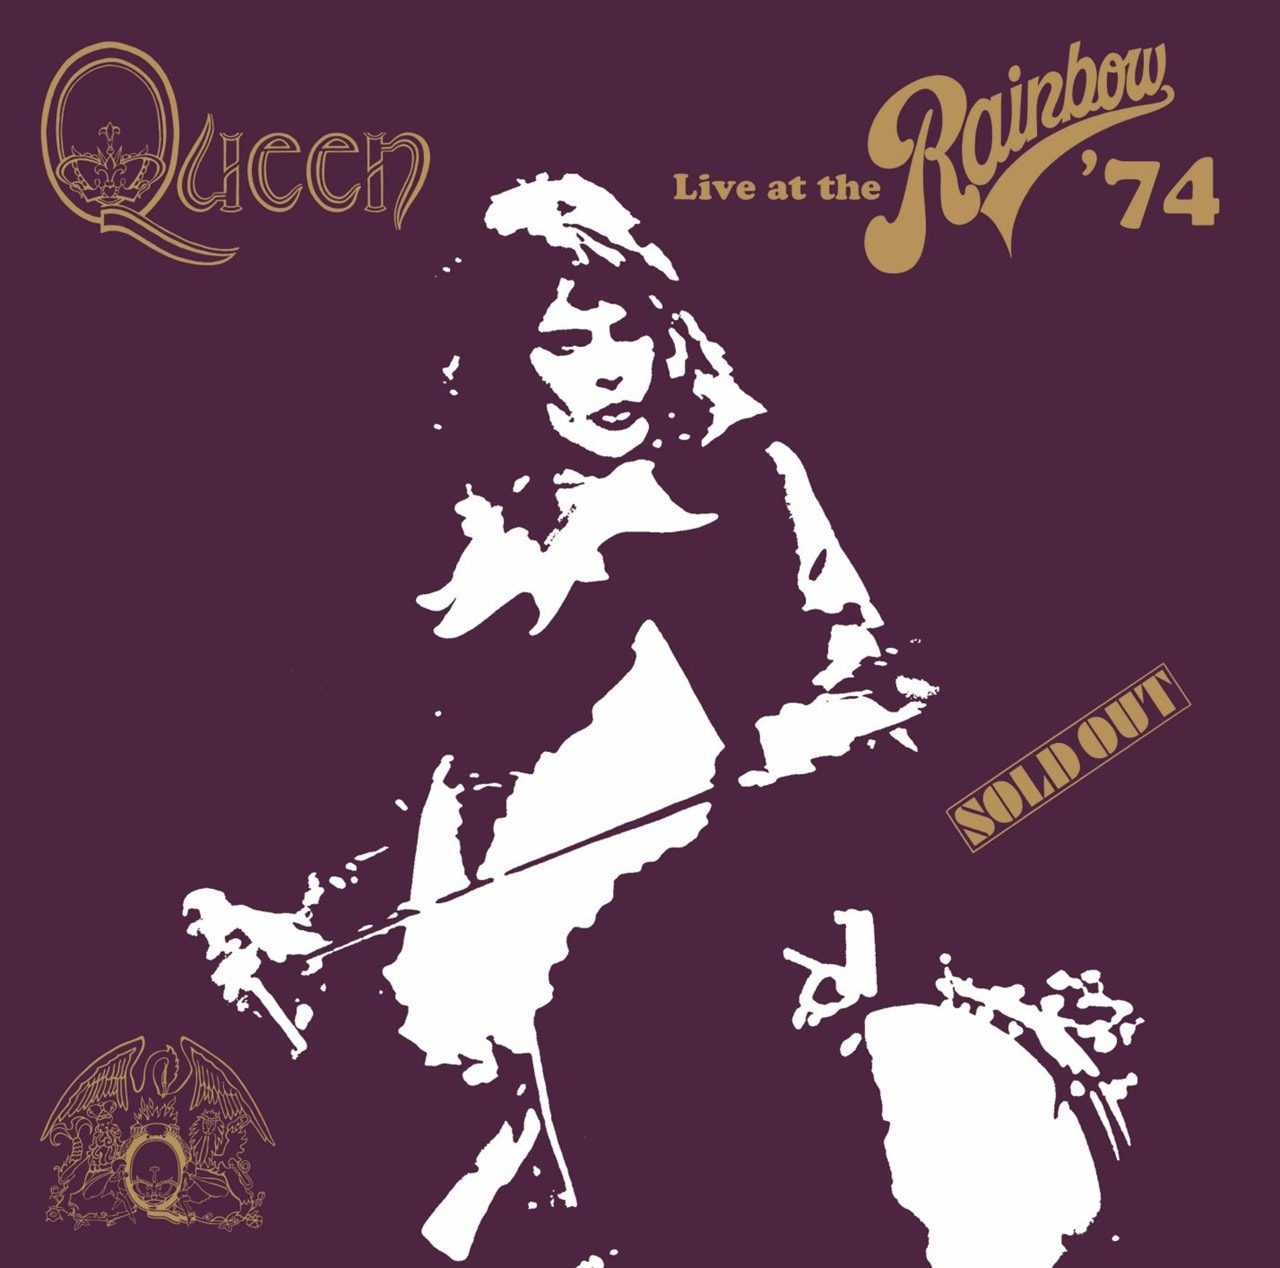 Live at the Rainbow '74 - 1